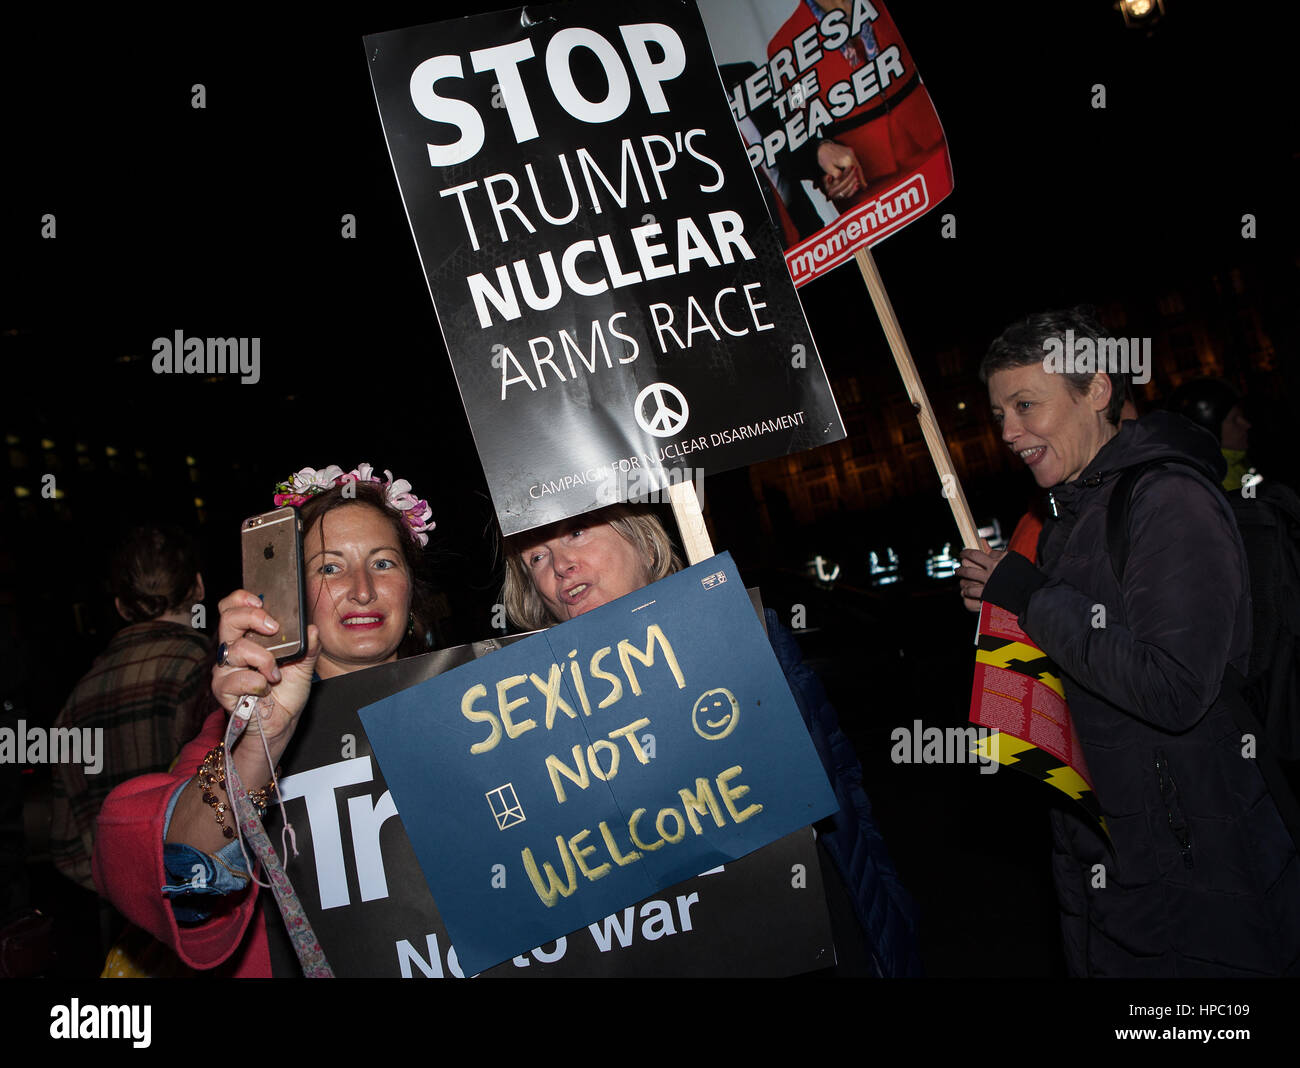 London, UK. 20th Feb, 2017. Anti Trump protesters with placards at a demonstration at Parliament Square and Whitehall. - Stock Image